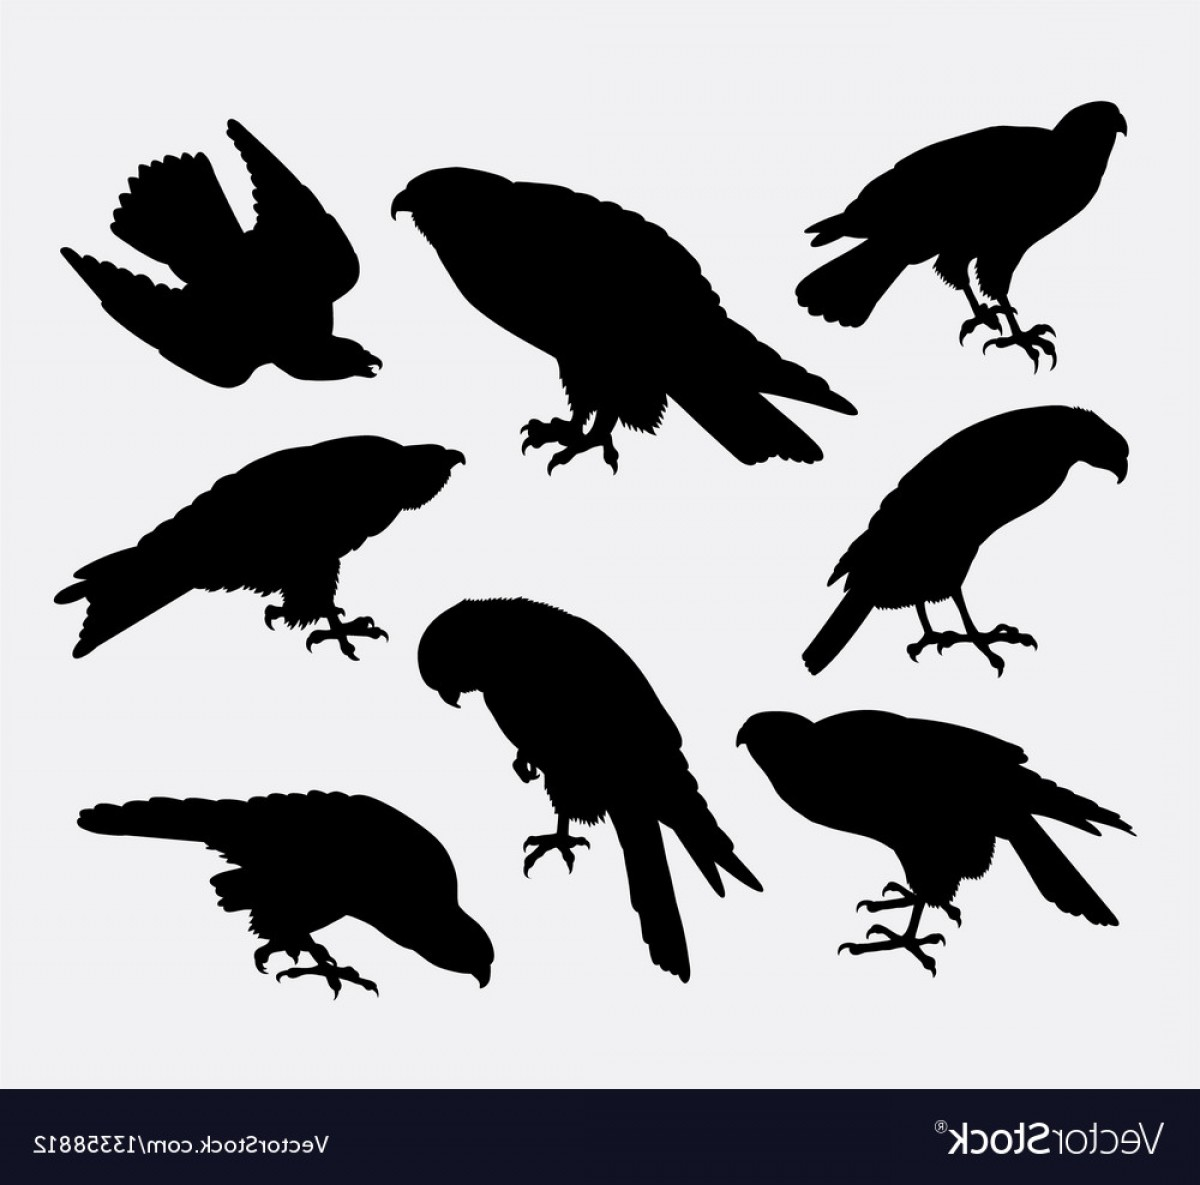 Falcon Silhouette Vector: Eagle Falcon Hawk Bird Animal Silhouette Vector